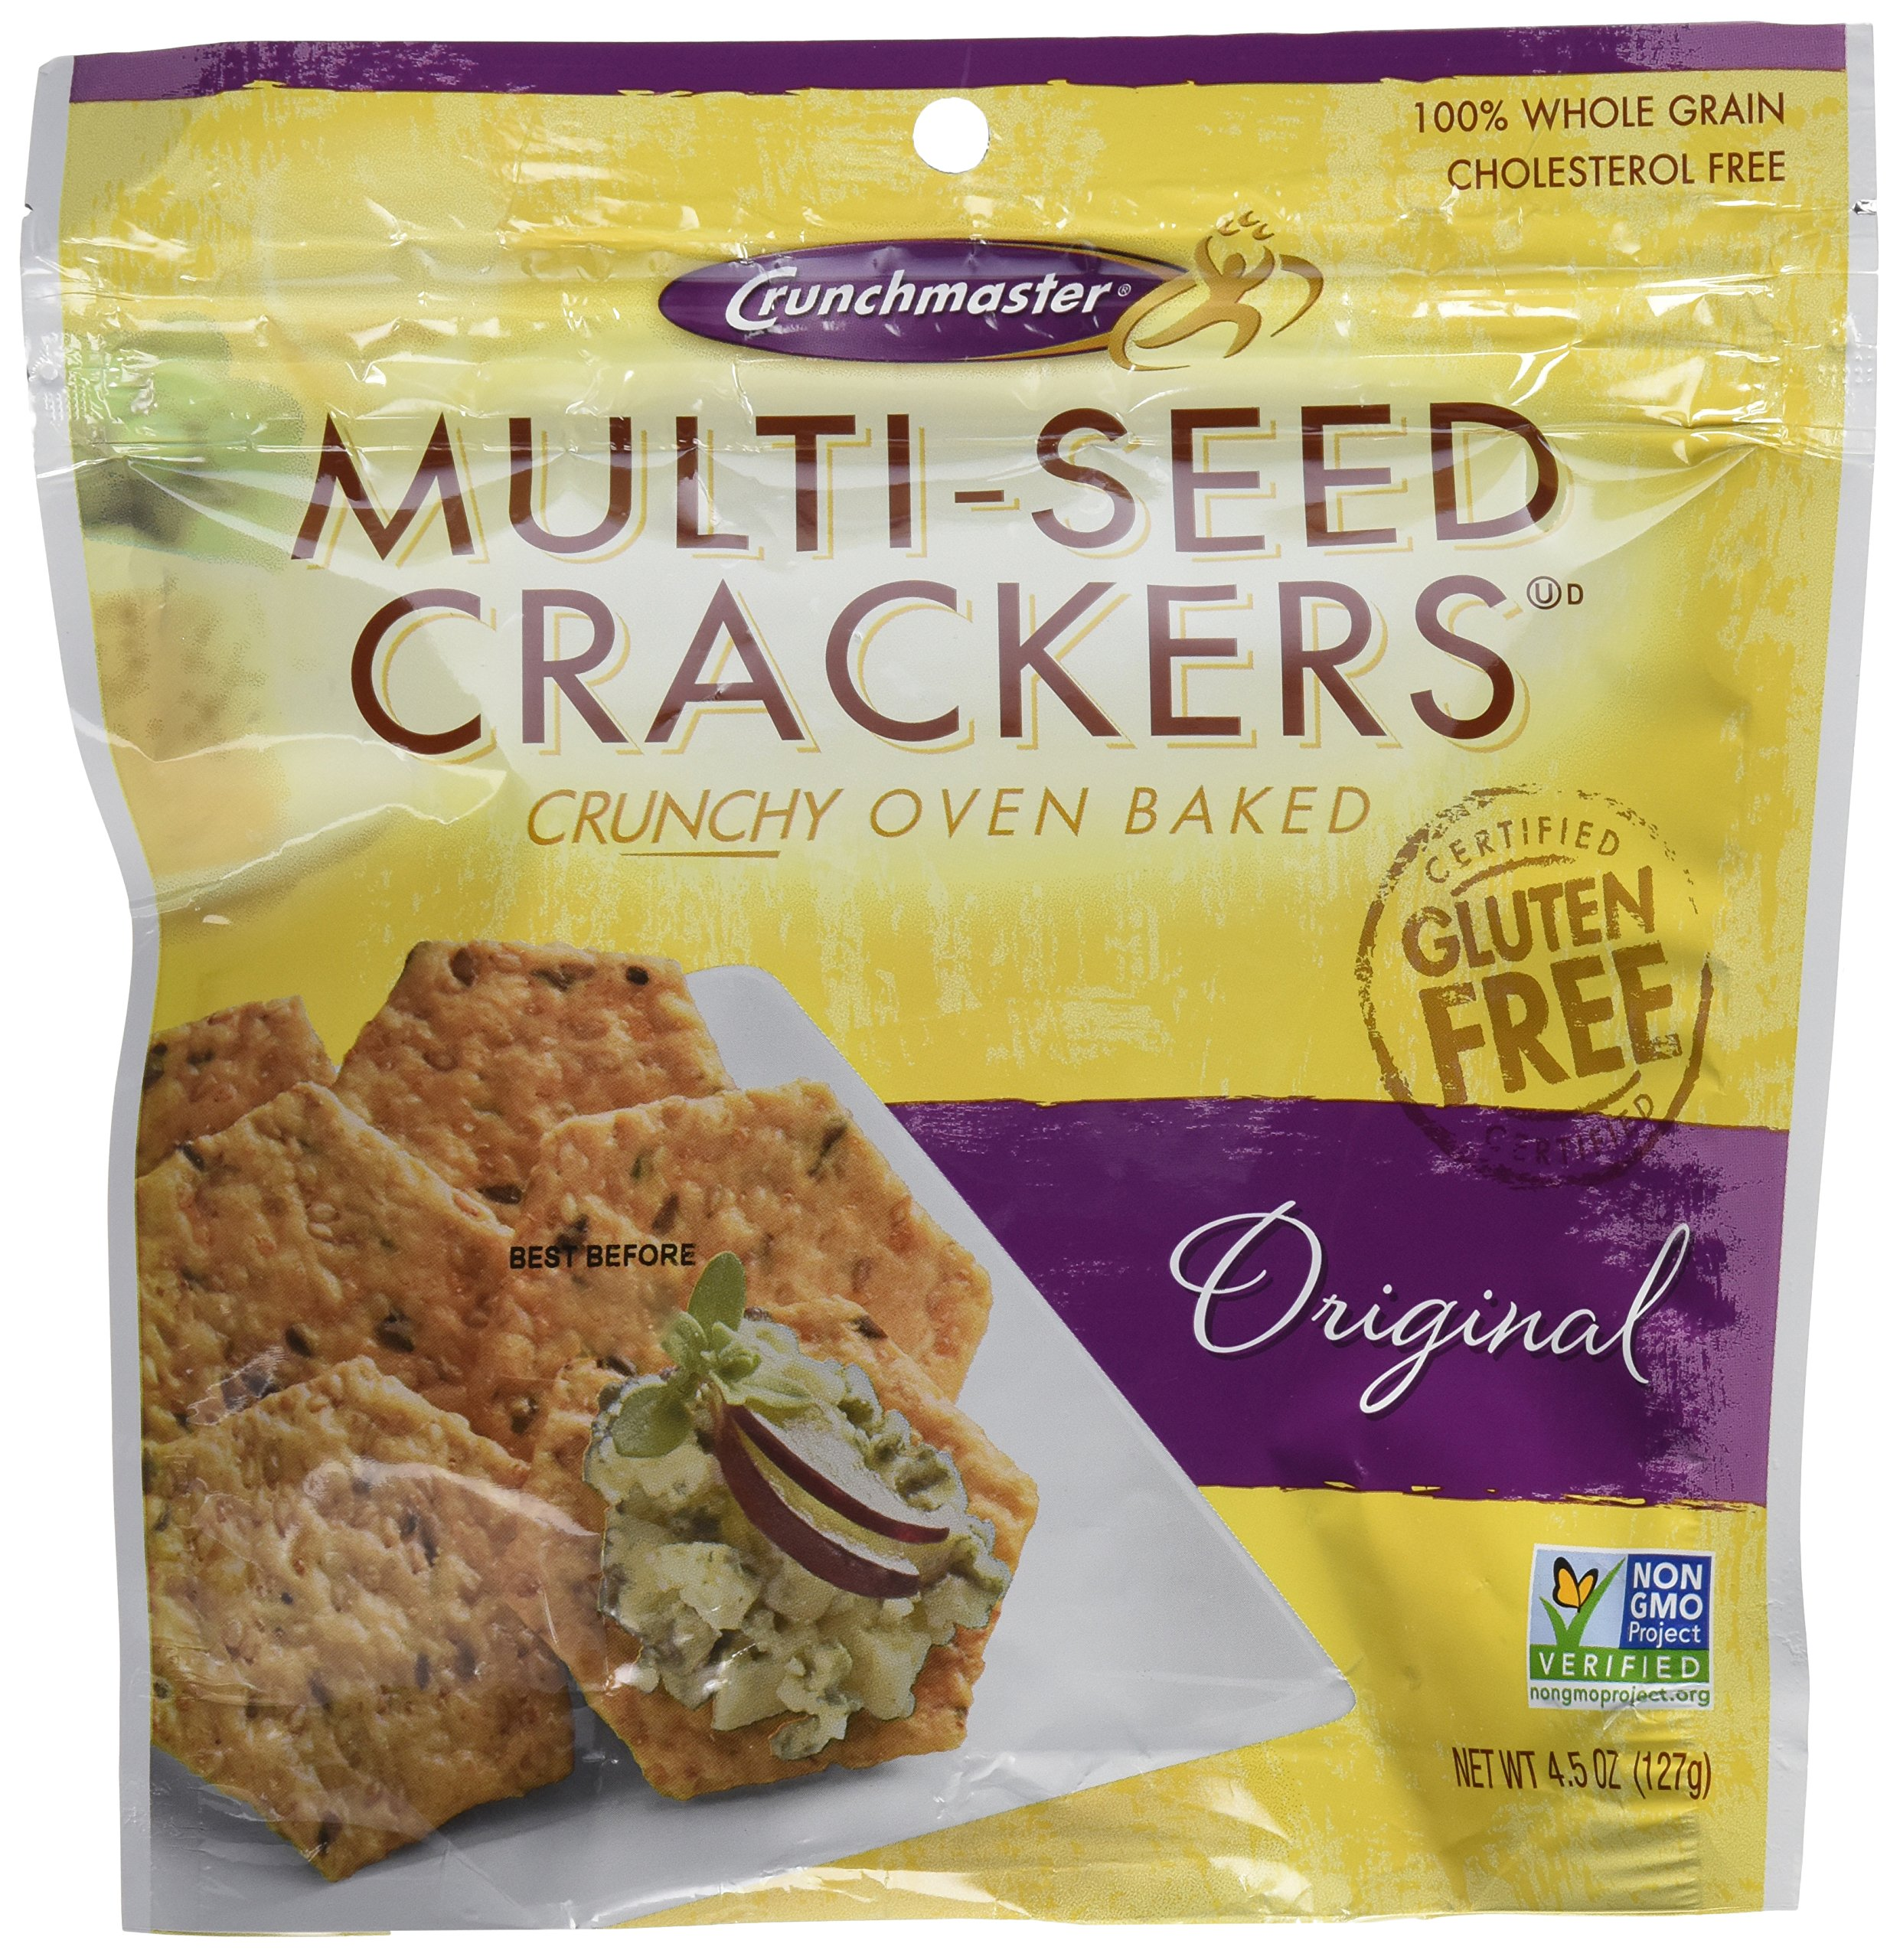 Crunchmaster Crackers Multi-Seed Orginal  - 2 / 4.5 Oz Bags Gluten Free by Crunchmaster